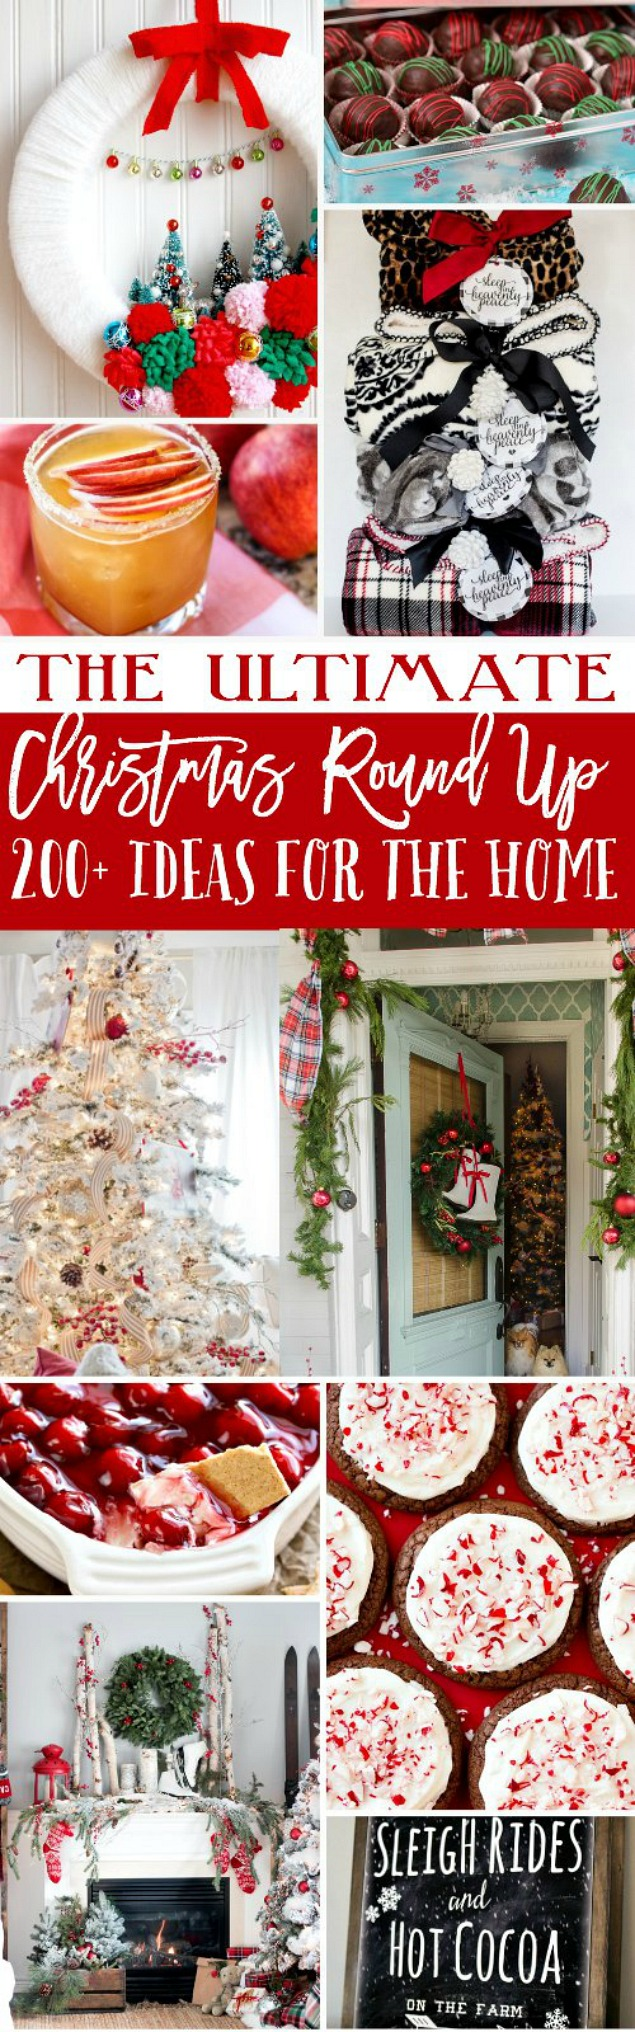 The ULTIMATE Christmas Idea Roundup.Everything you need to decorate your home and entertain for the holidays! Great round up of Christmas ideas!